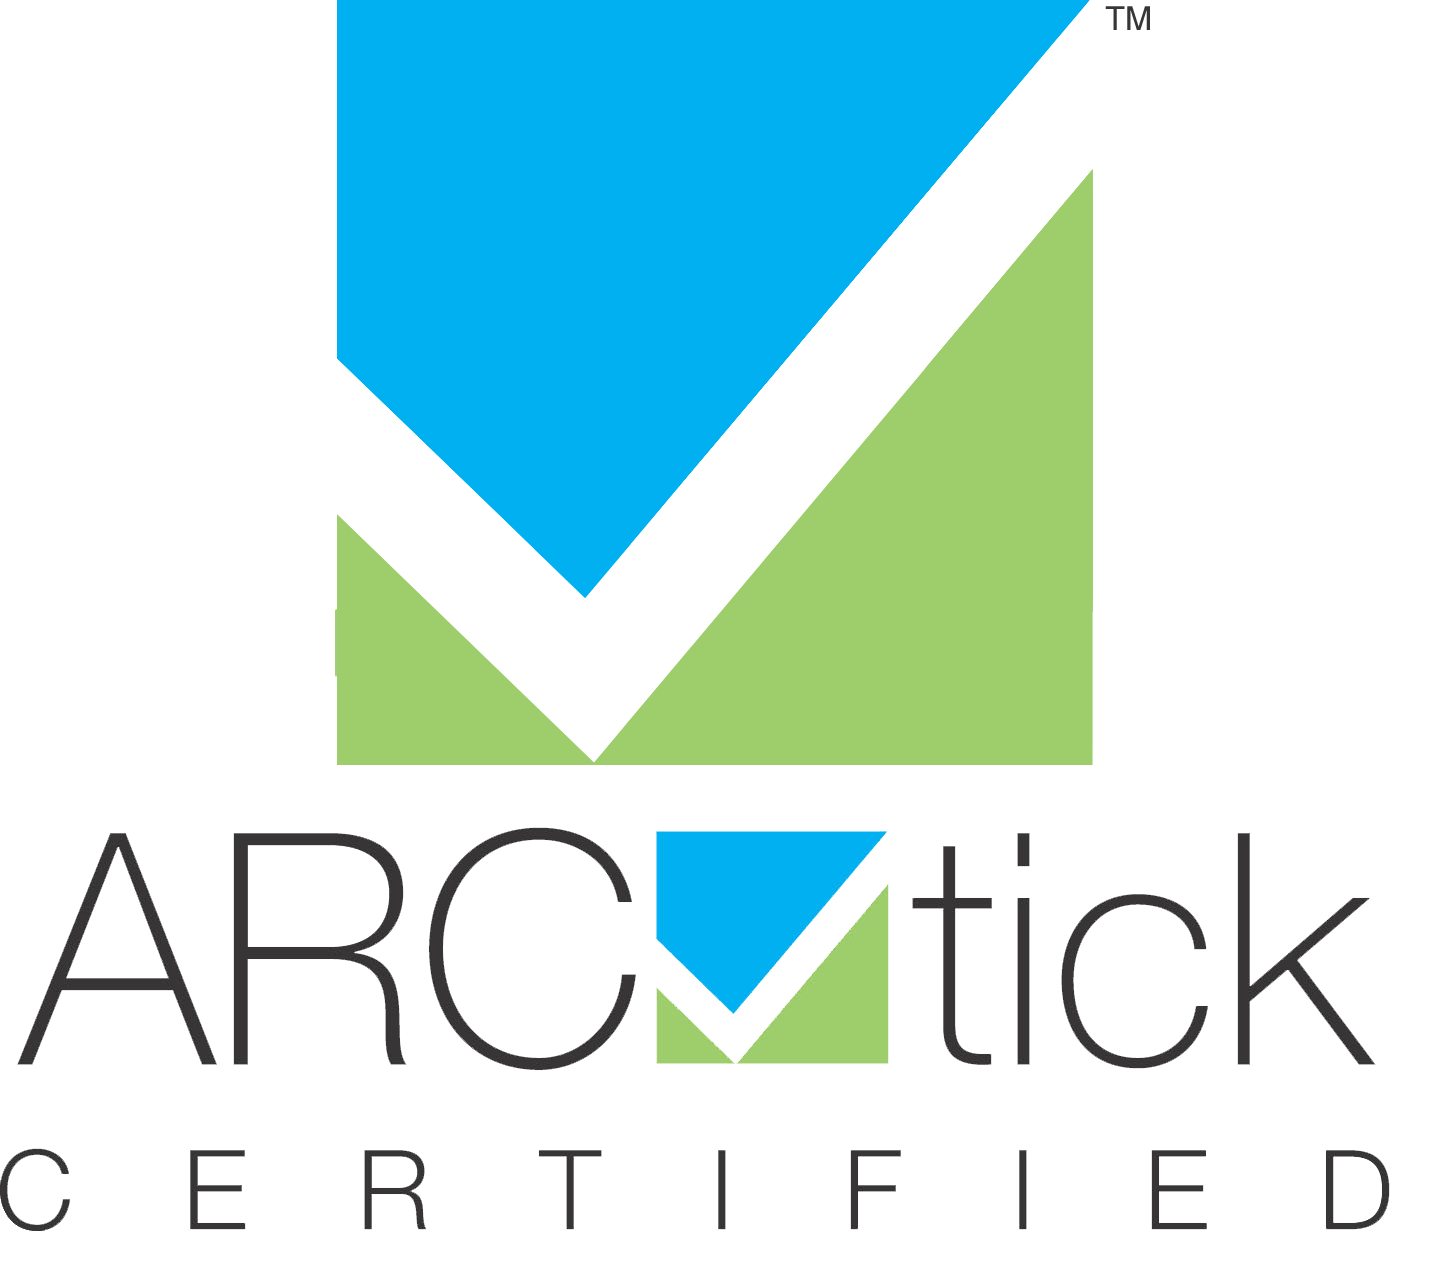 ARC tick certified badge with transparent background